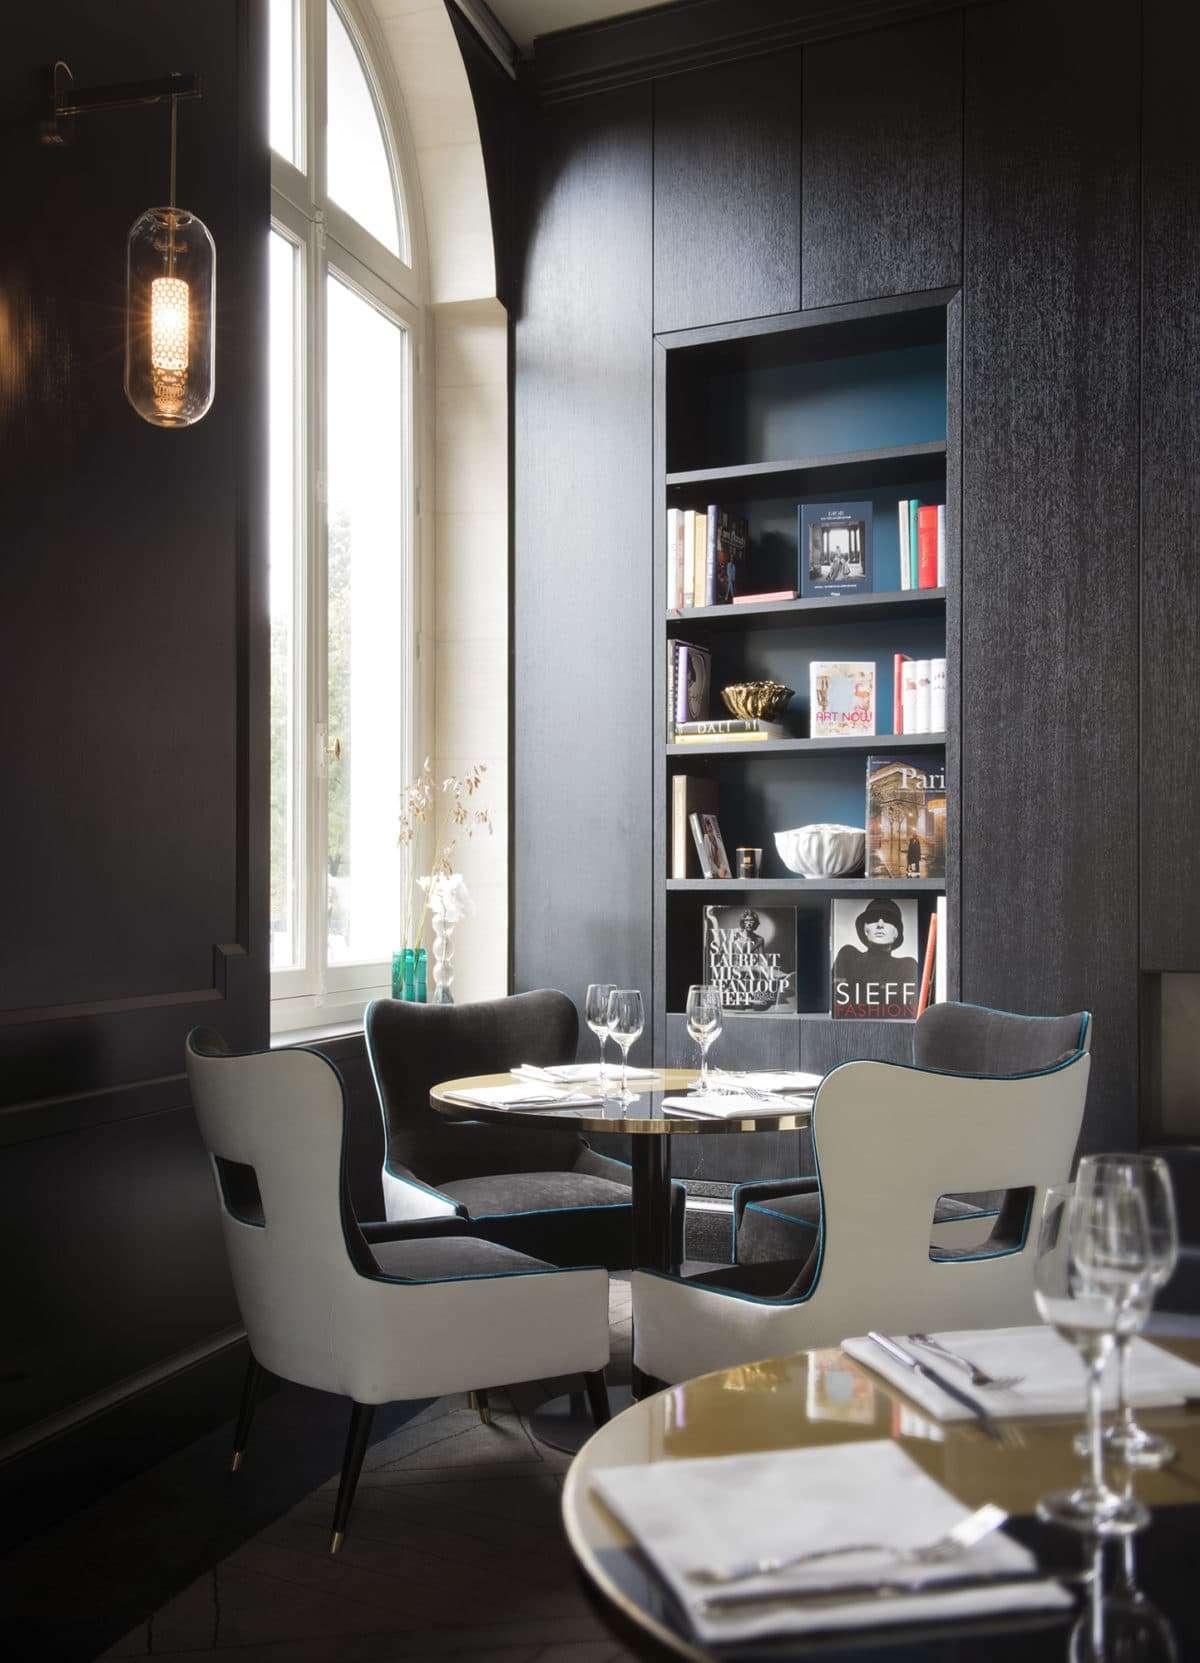 le victoria 1836 une brasserie chic sign e sarah lavoine. Black Bedroom Furniture Sets. Home Design Ideas